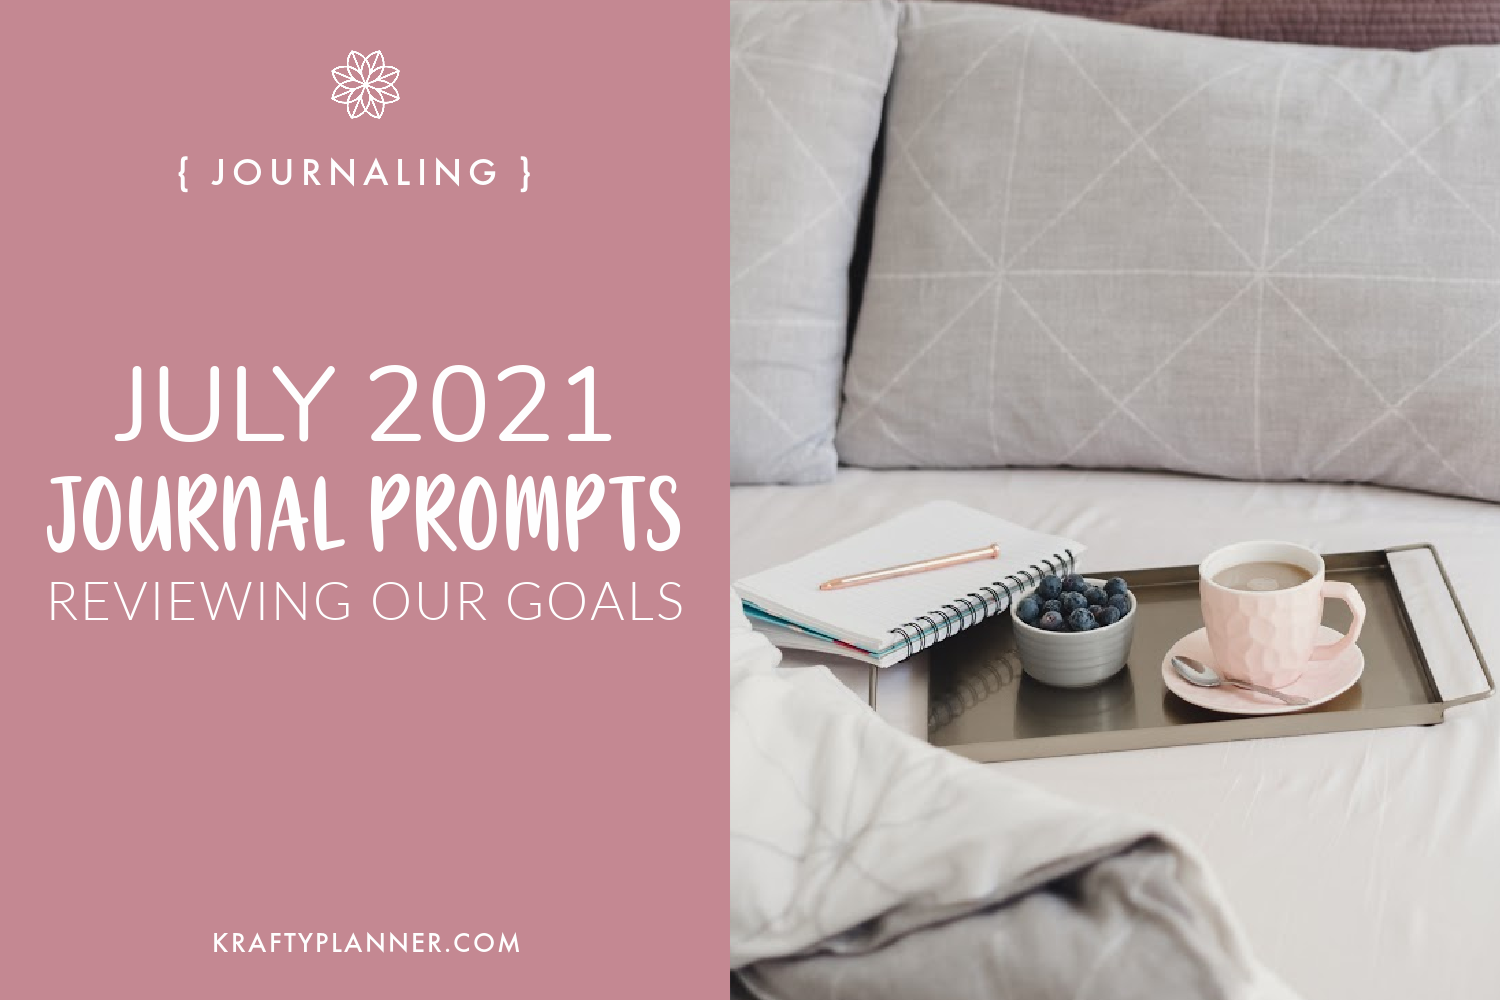 Daily Journaling Prompts for July 2021